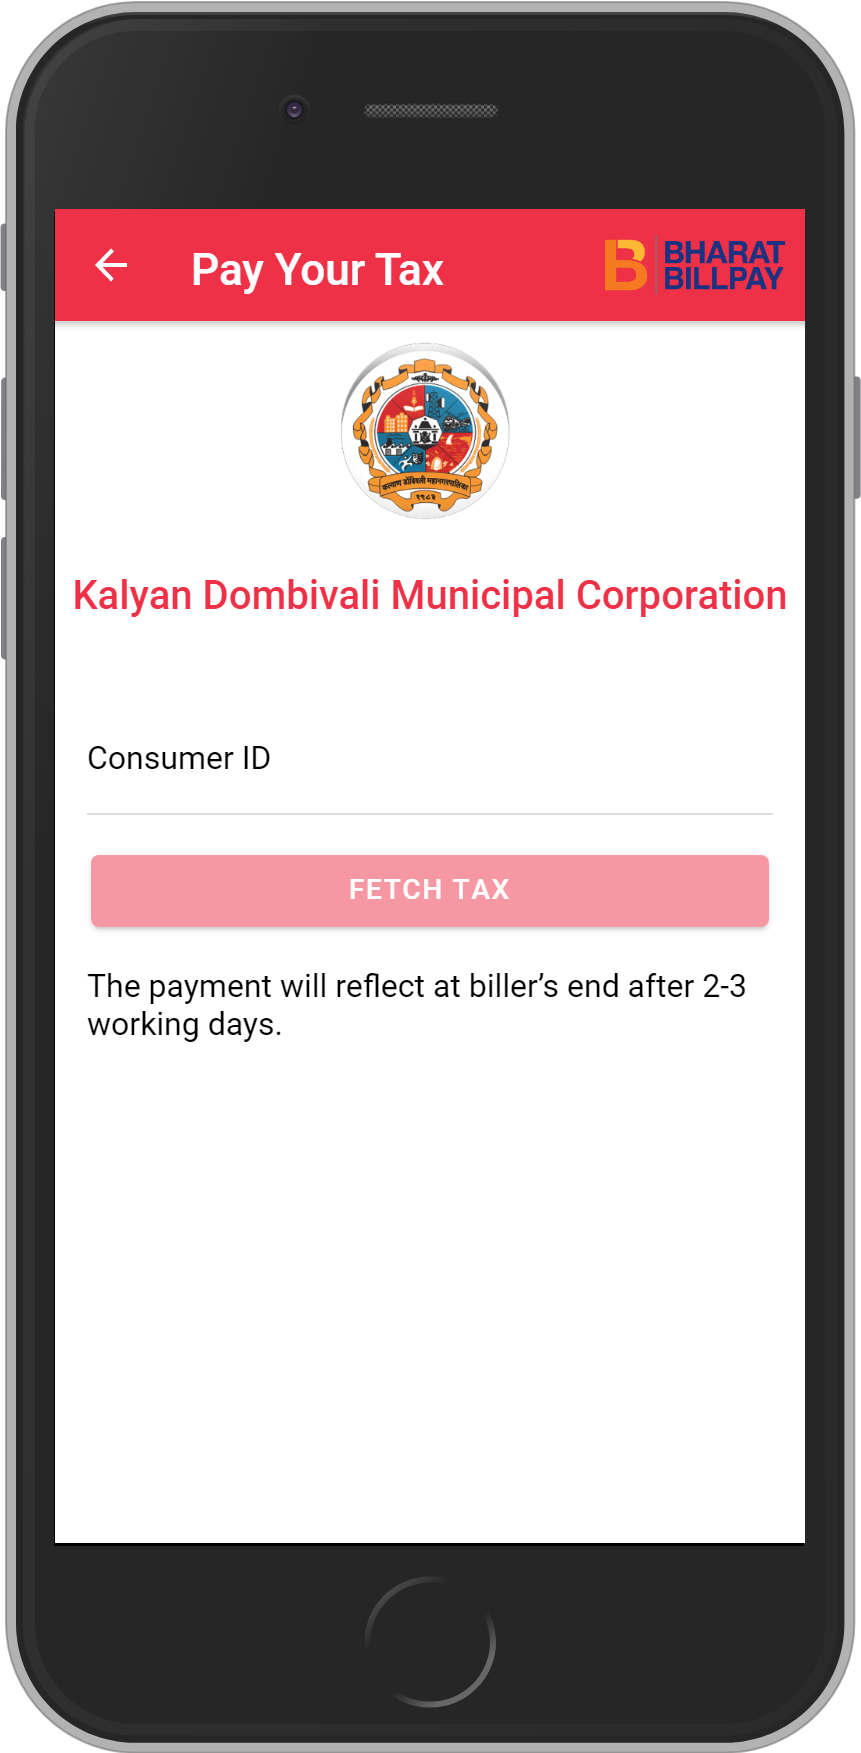 Get UNLIMITED <b>0.1%</b> CASHBACK on Kalyan Dombivali Municipal Corporation Recharges.